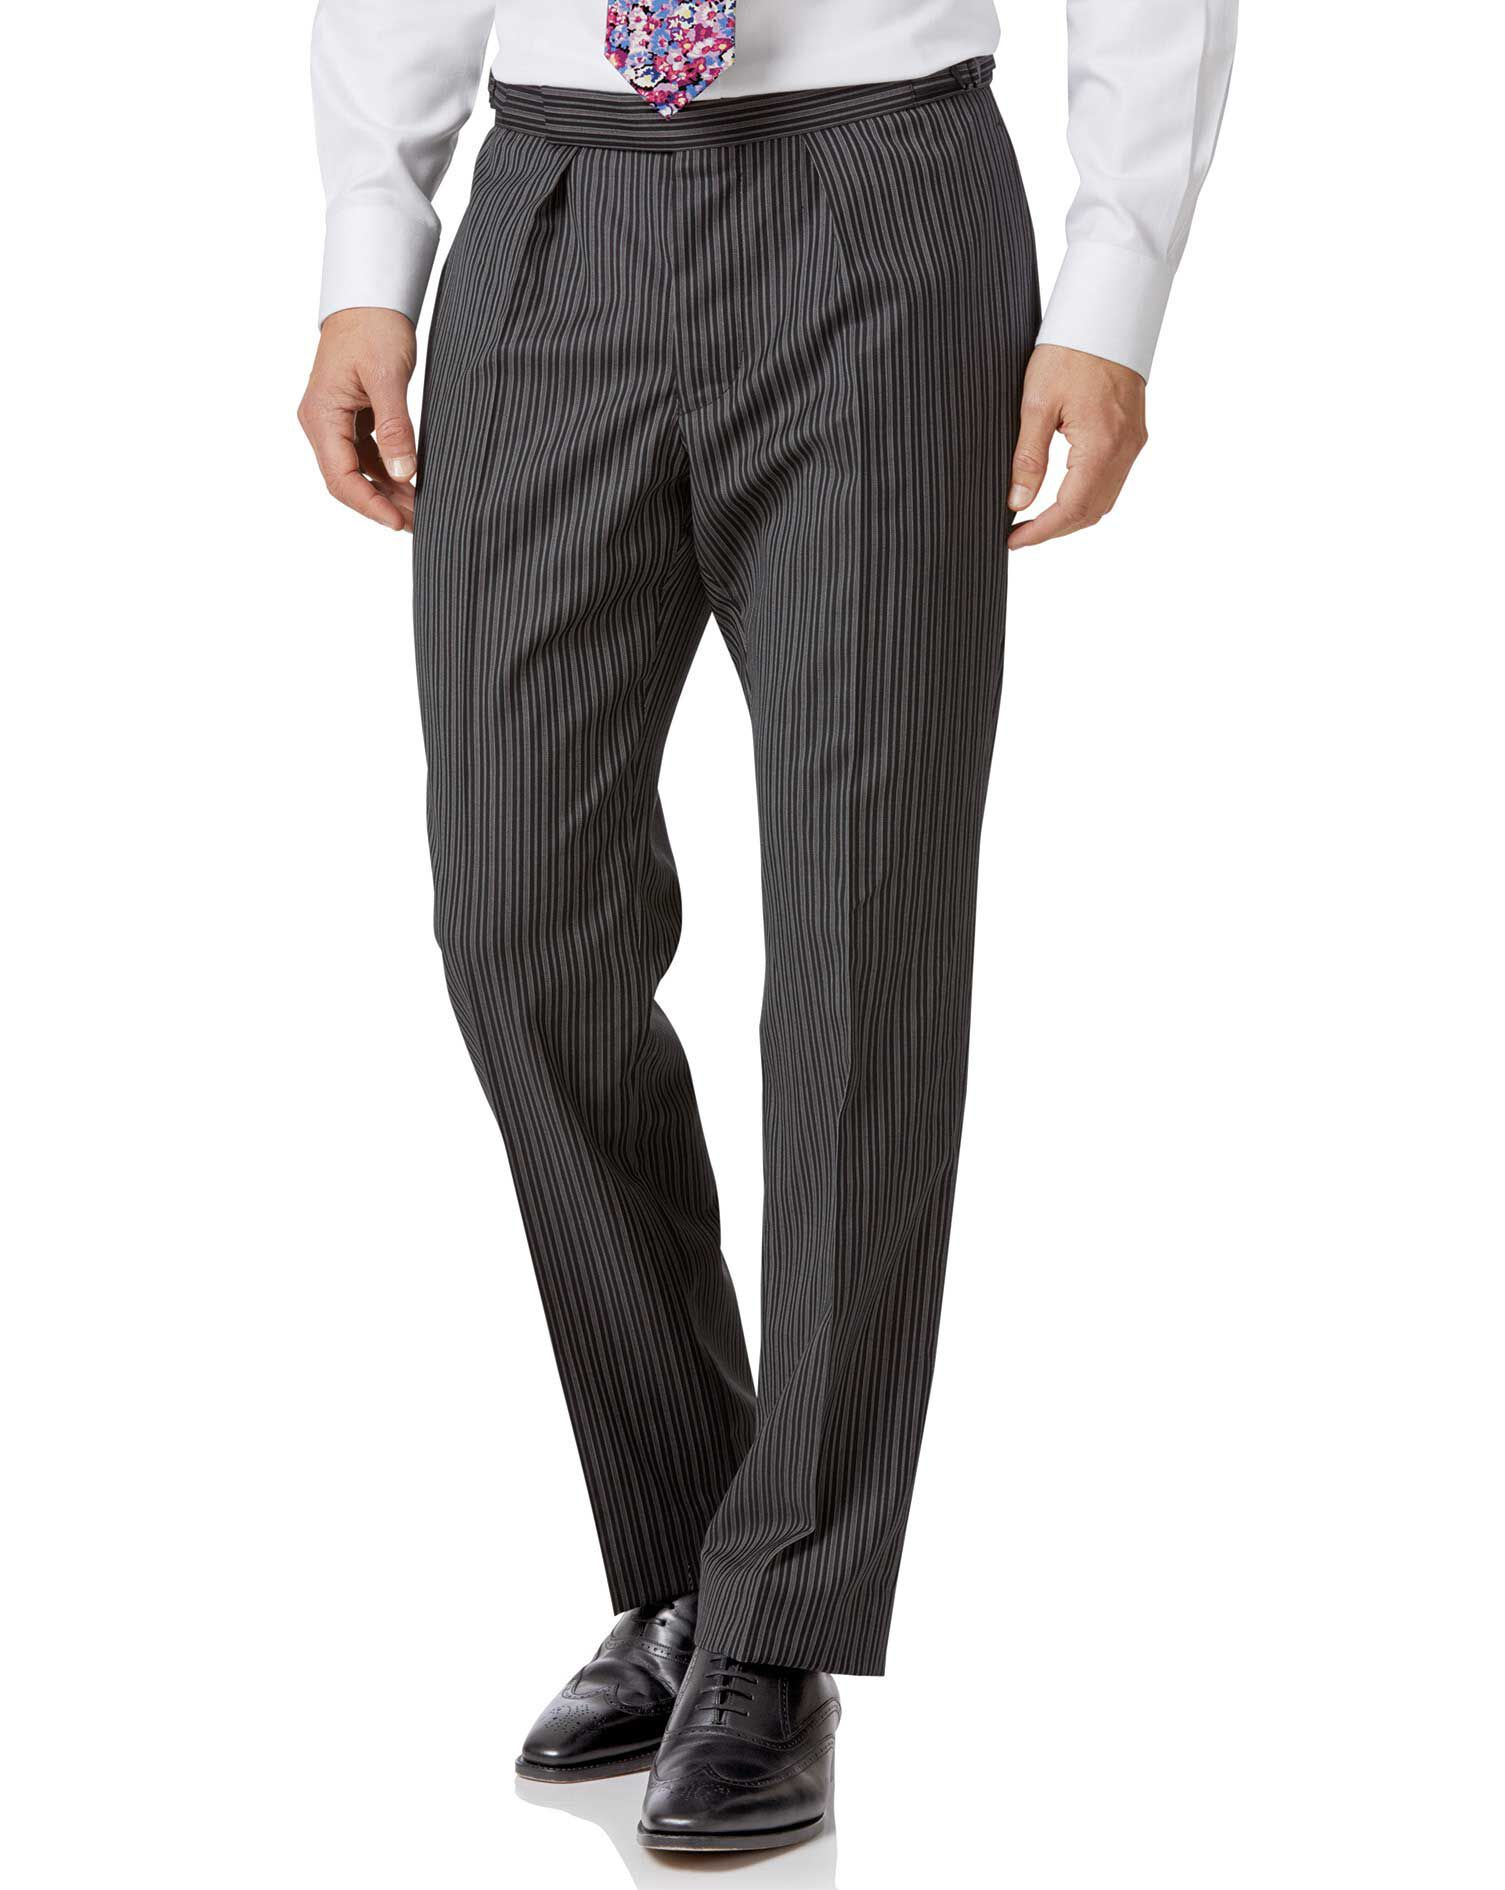 Black Stripe Classic Fit Morning Suit Trousers Size 34/38 by Charles Tyrwhitt